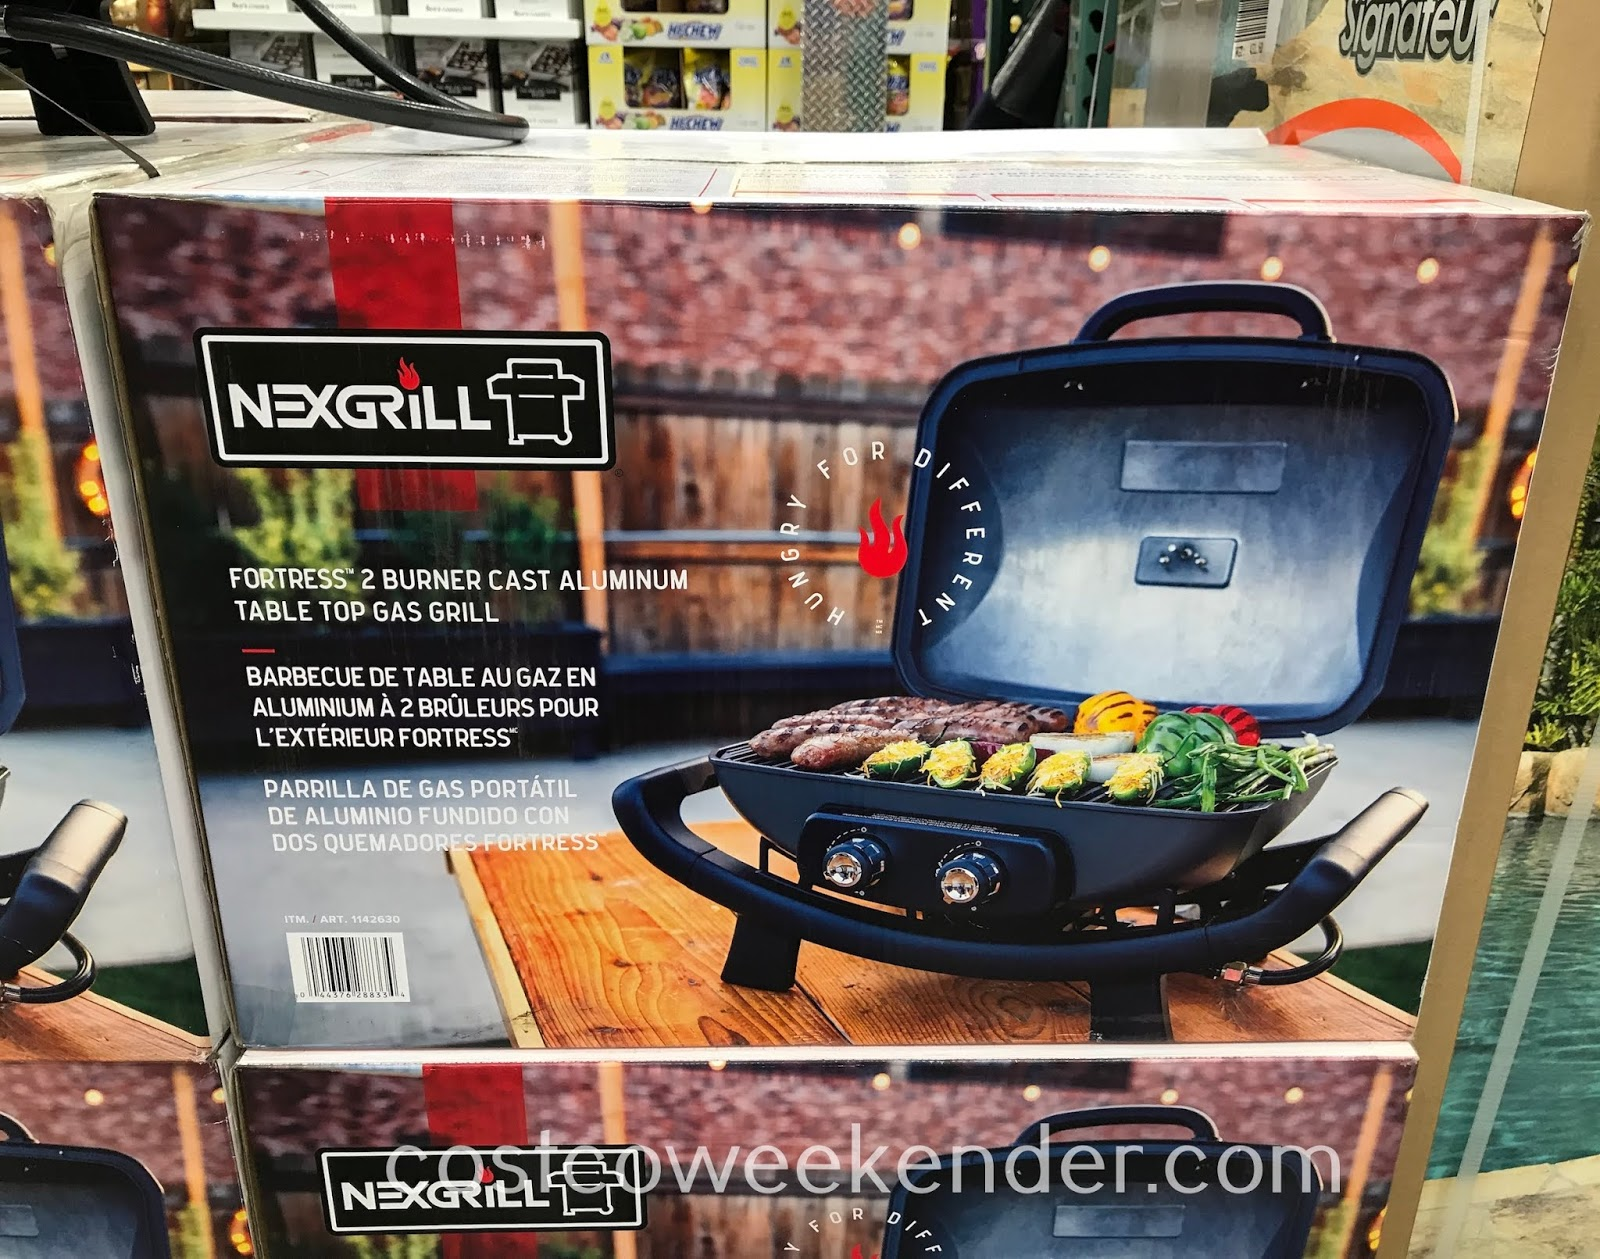 Costco 1142630 - Nexgrill Fortress Cast Aluminum Table Top Gas Grill can be used in your backyard or can be taken on the go